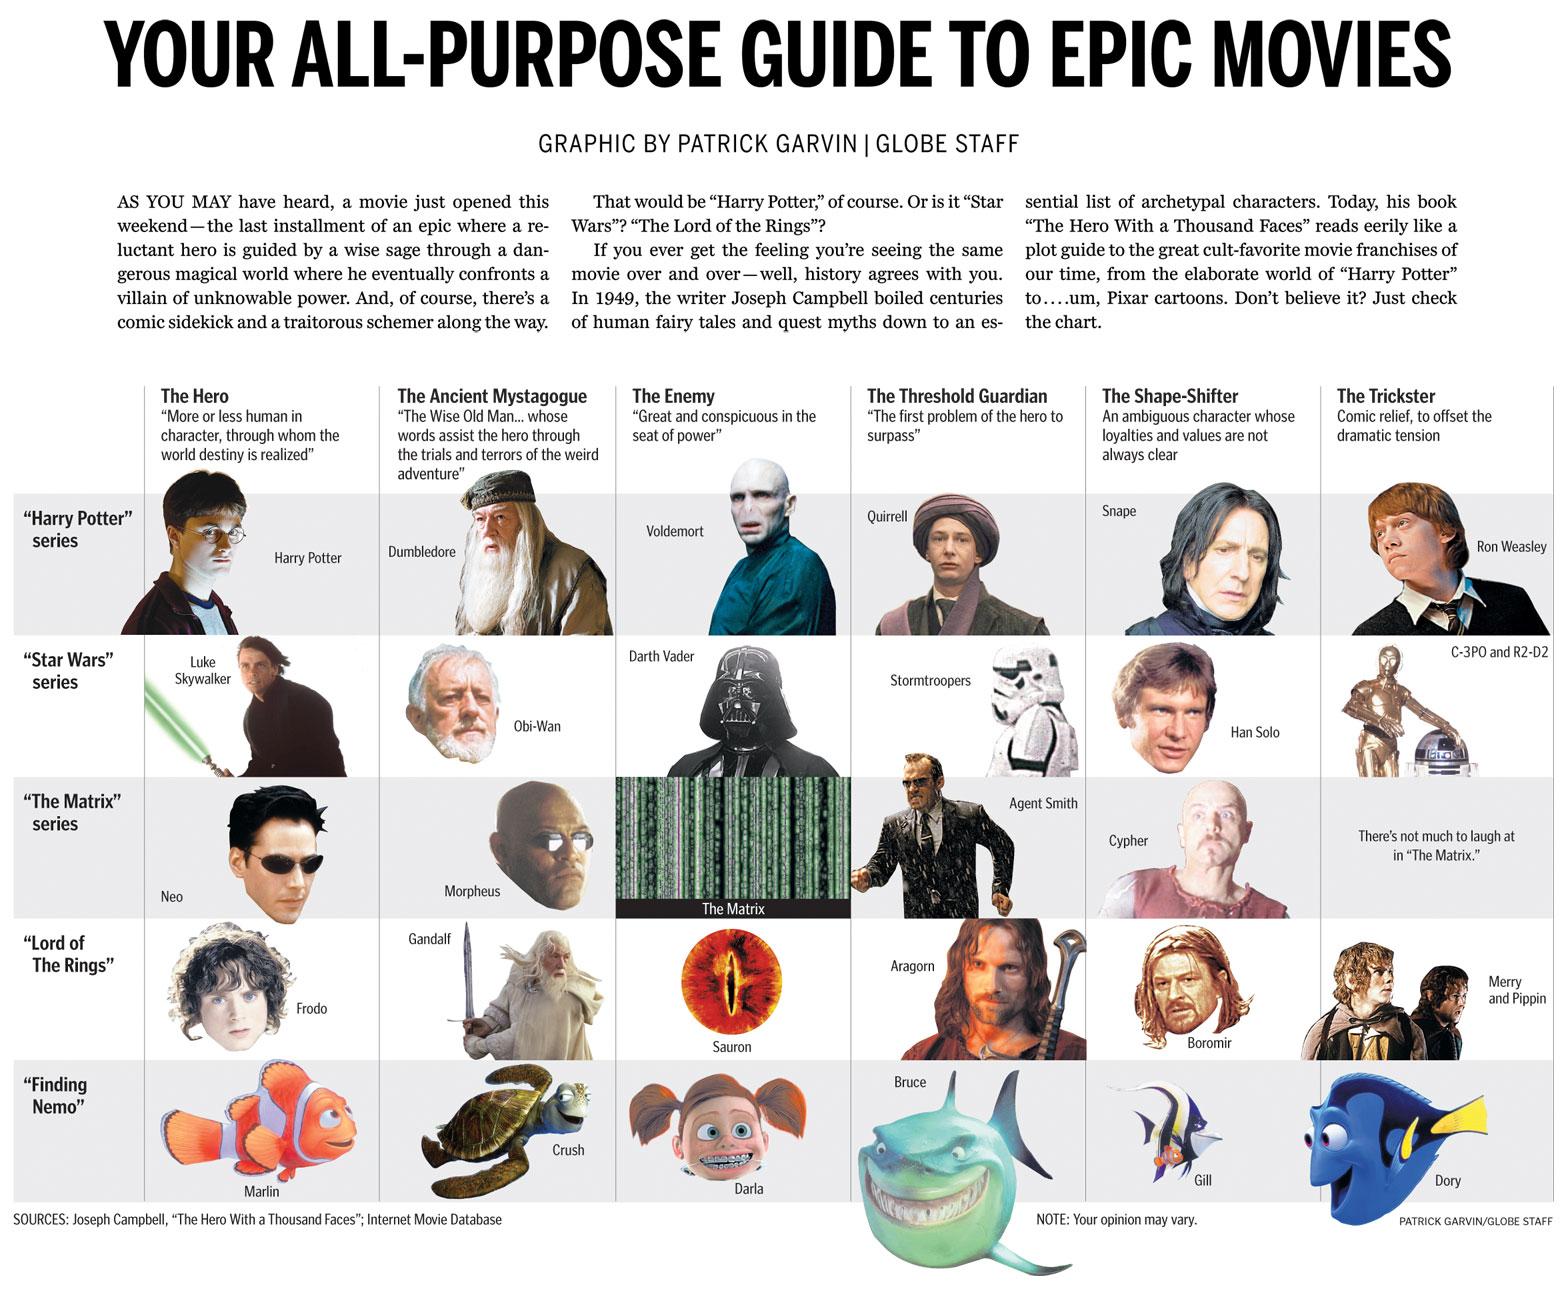 Boston Globe chart comparing Harry Potter, Star Wars, The Matrix, Lord of the Rings and Finding Nemo using Joseph Campbell hero archetypes